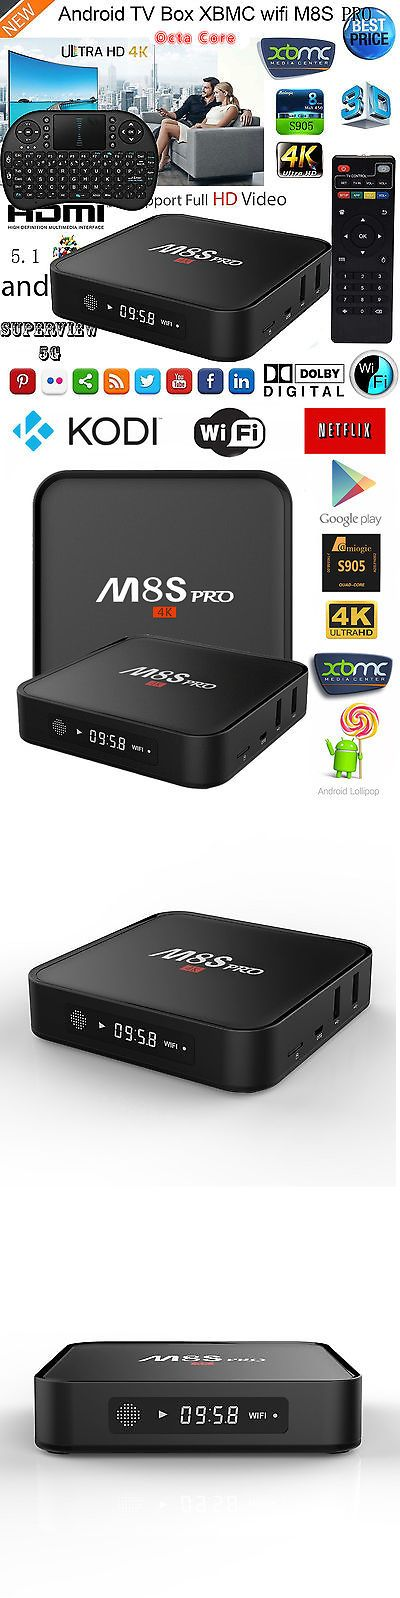 Internet and Media Streamers: 4K Hd Wifi Smart Tv Box Android 5.1 Octa Core Kodi Media Player+Wireles Keyboard BUY IT NOW ONLY: $58.89